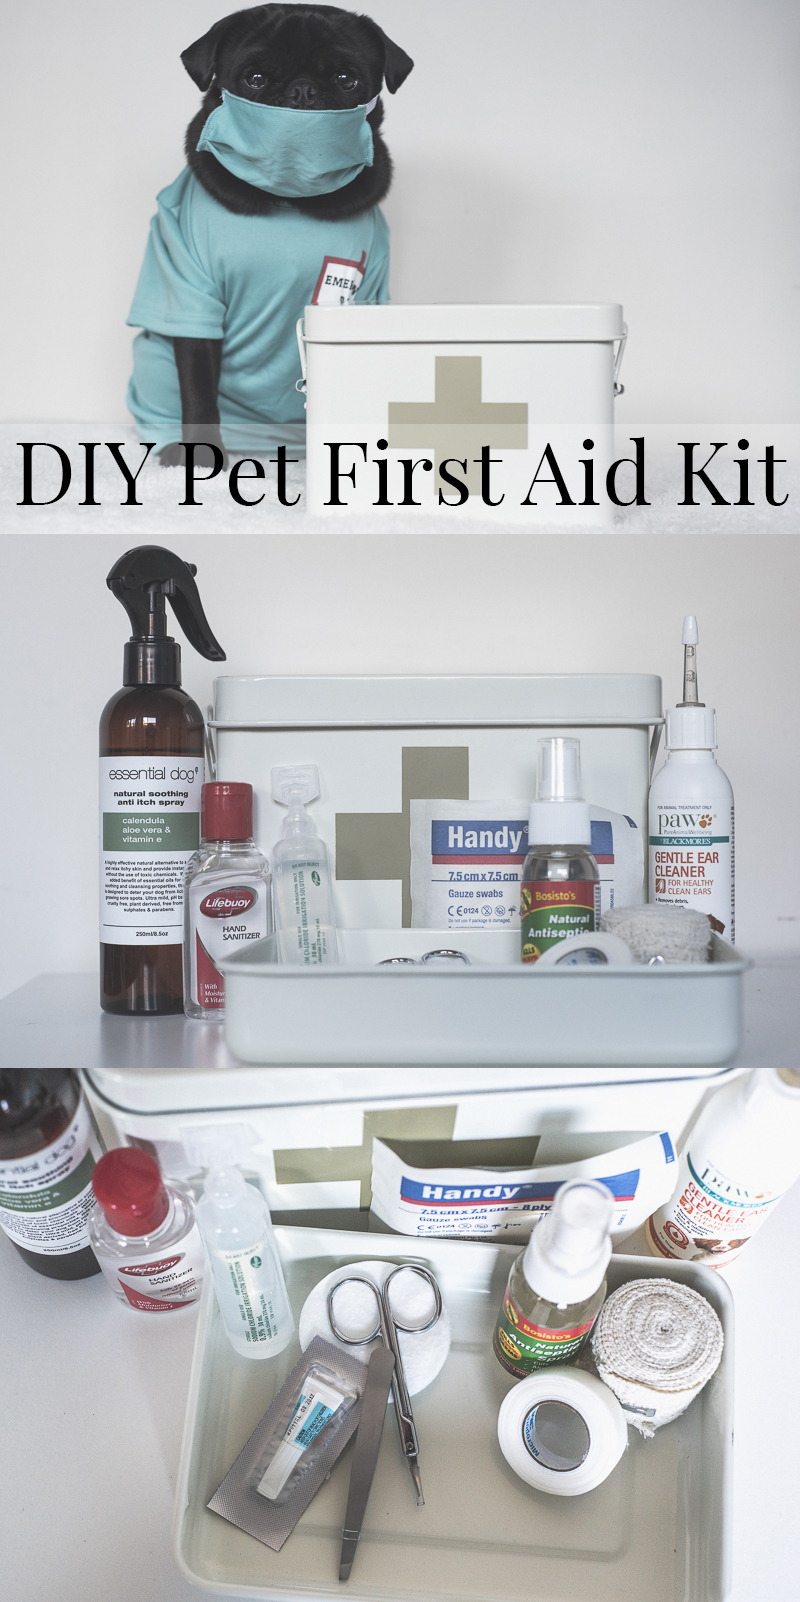 DIY Pet First Aid Kit | www.thepugdiary.com